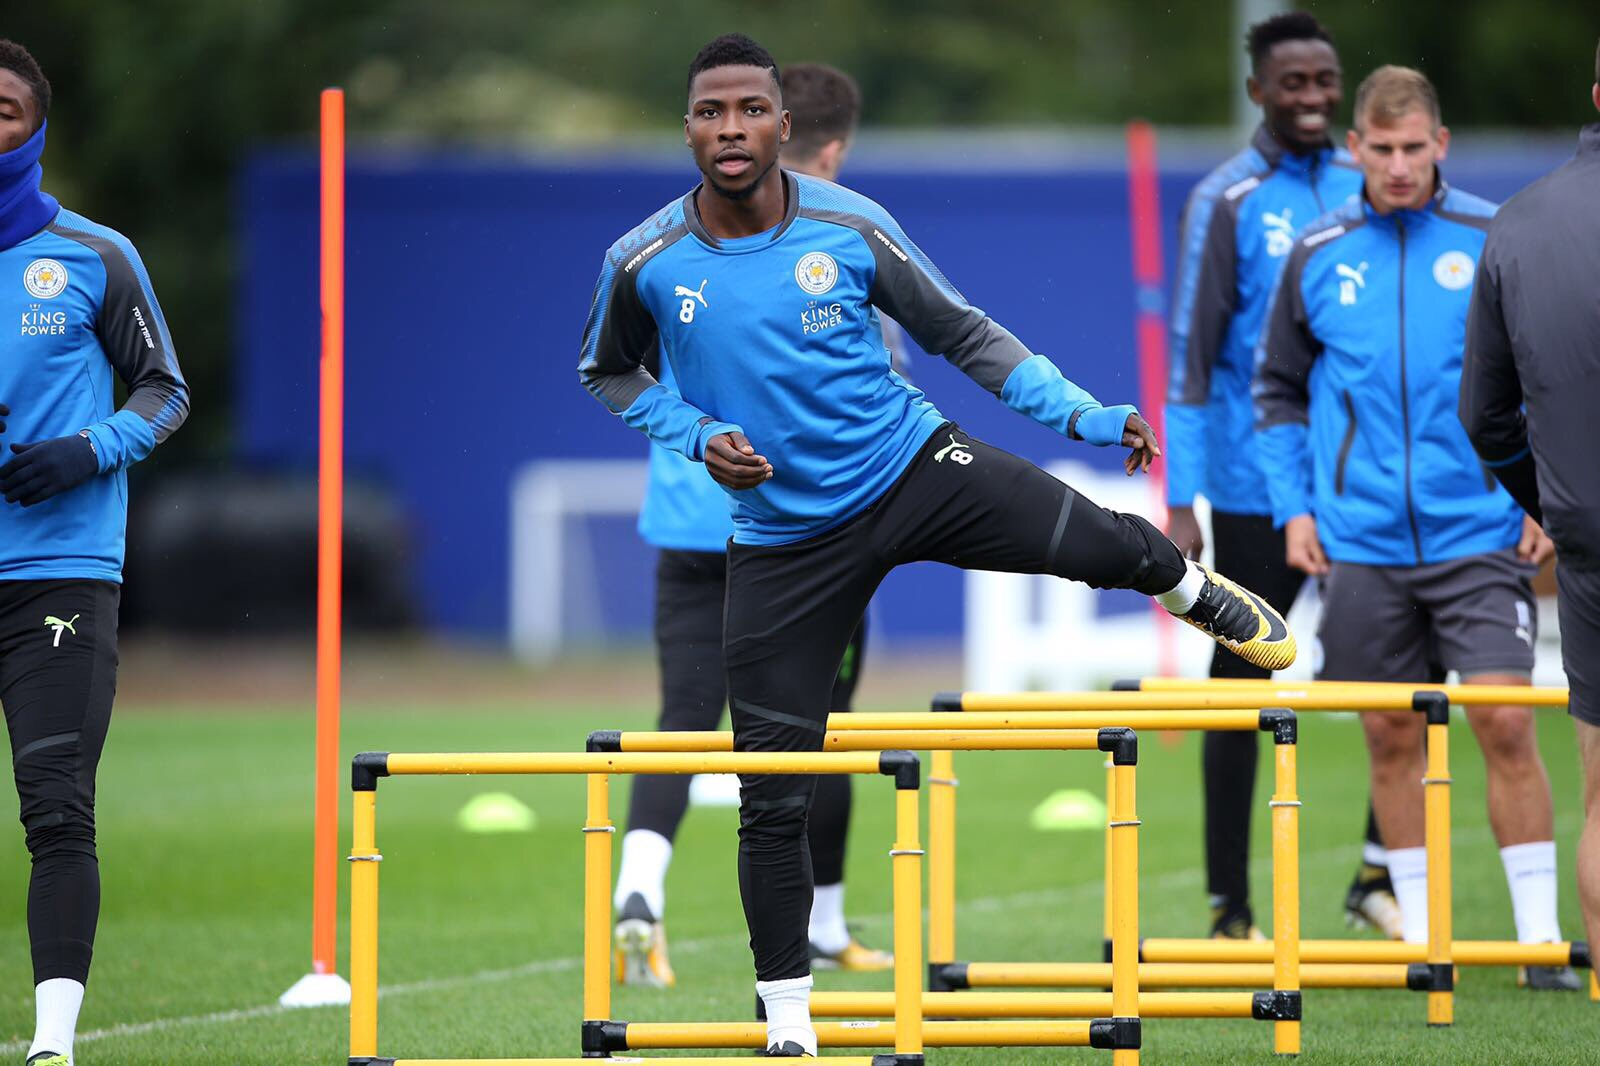 Henry: Iheanacho Good Signing For Leicester, He Delivered At Man City